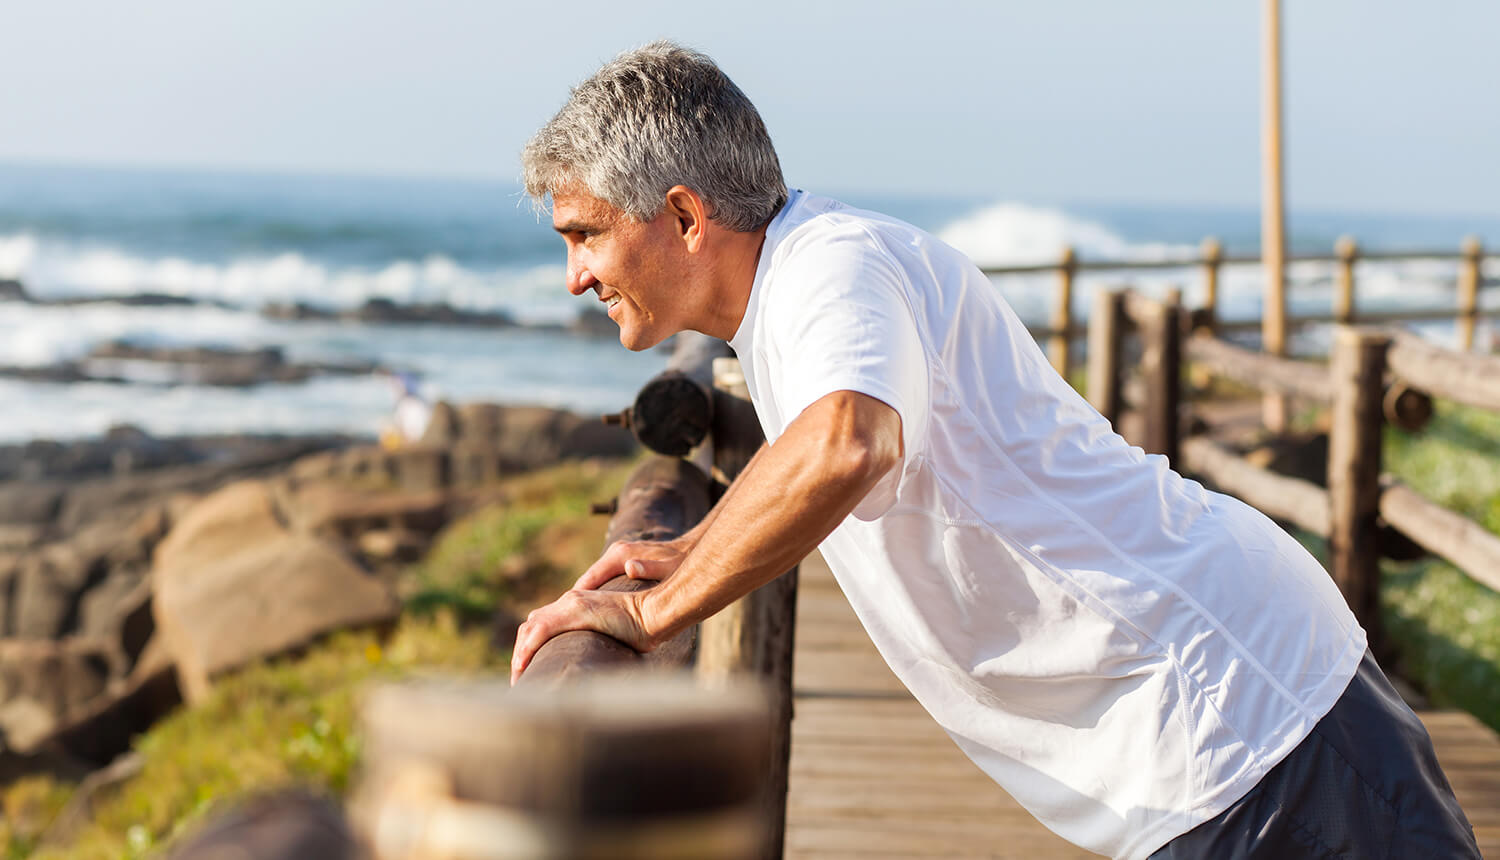 Man leaning over railing and stretching near the ocean